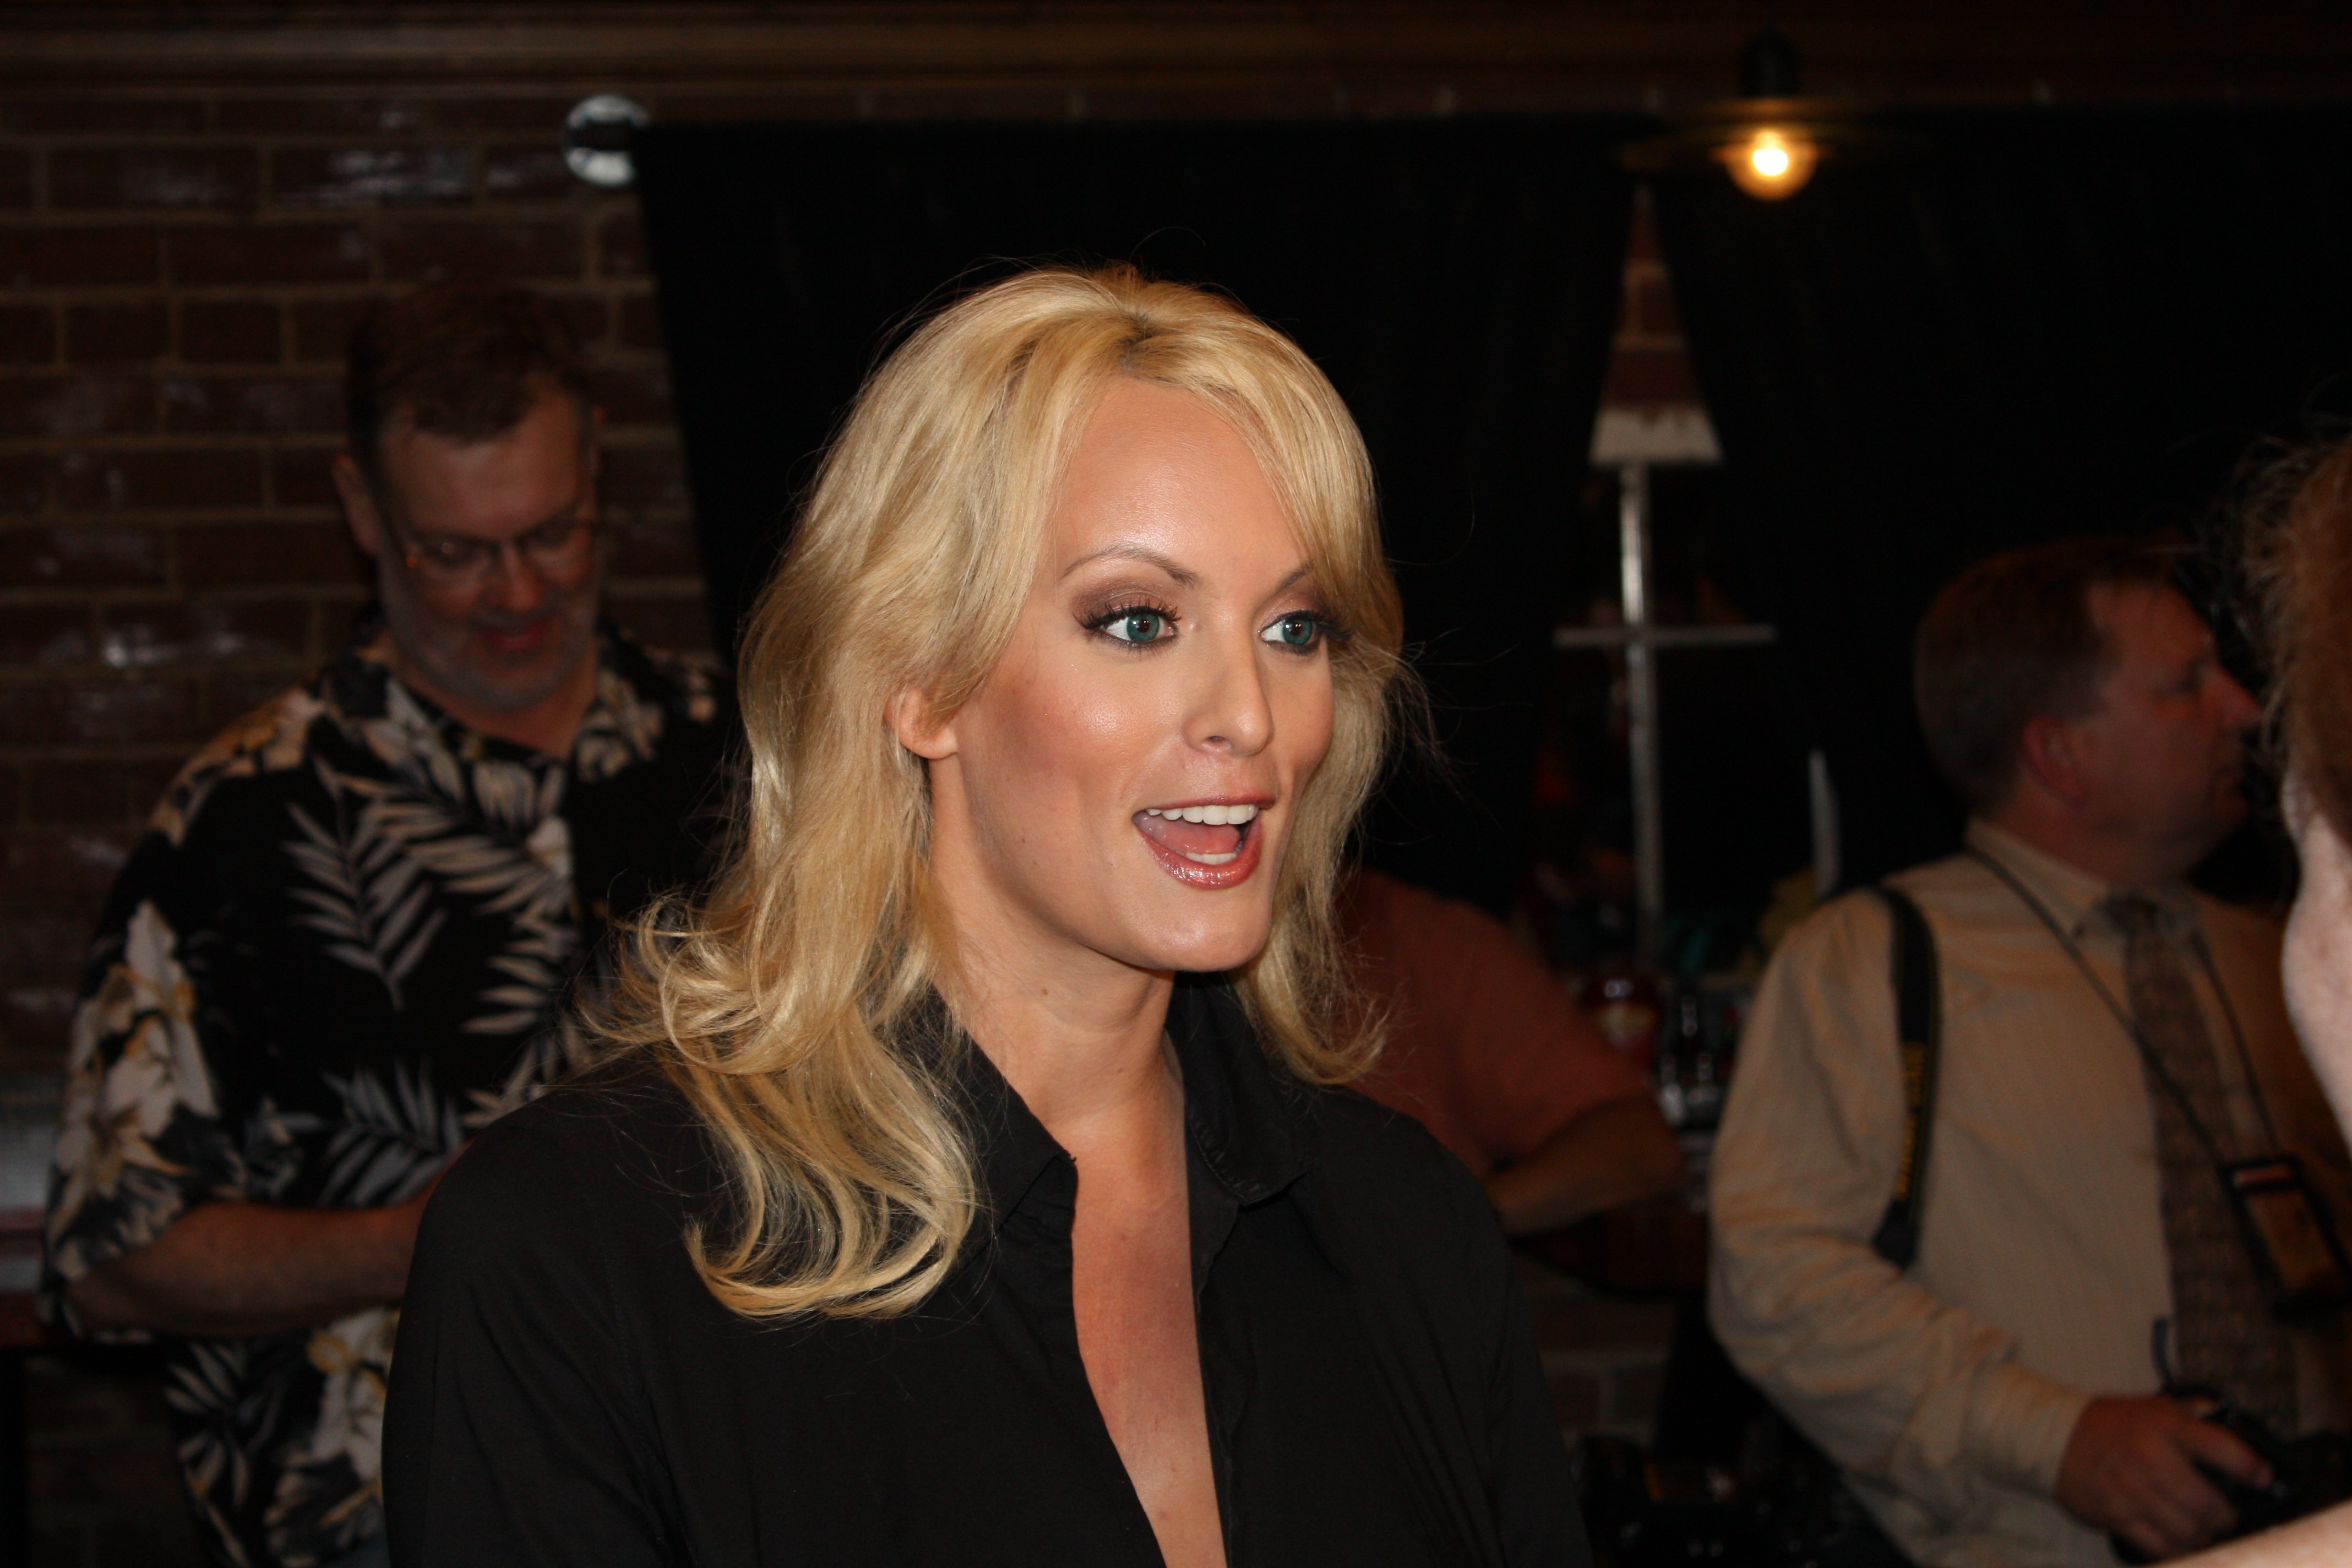 Anderson Cooper has taped an interview with Stephanie Clifford, the adult film actress known as Stormy Daniels who alleged a sexual relationship with Donald Trump and is now suing the president.